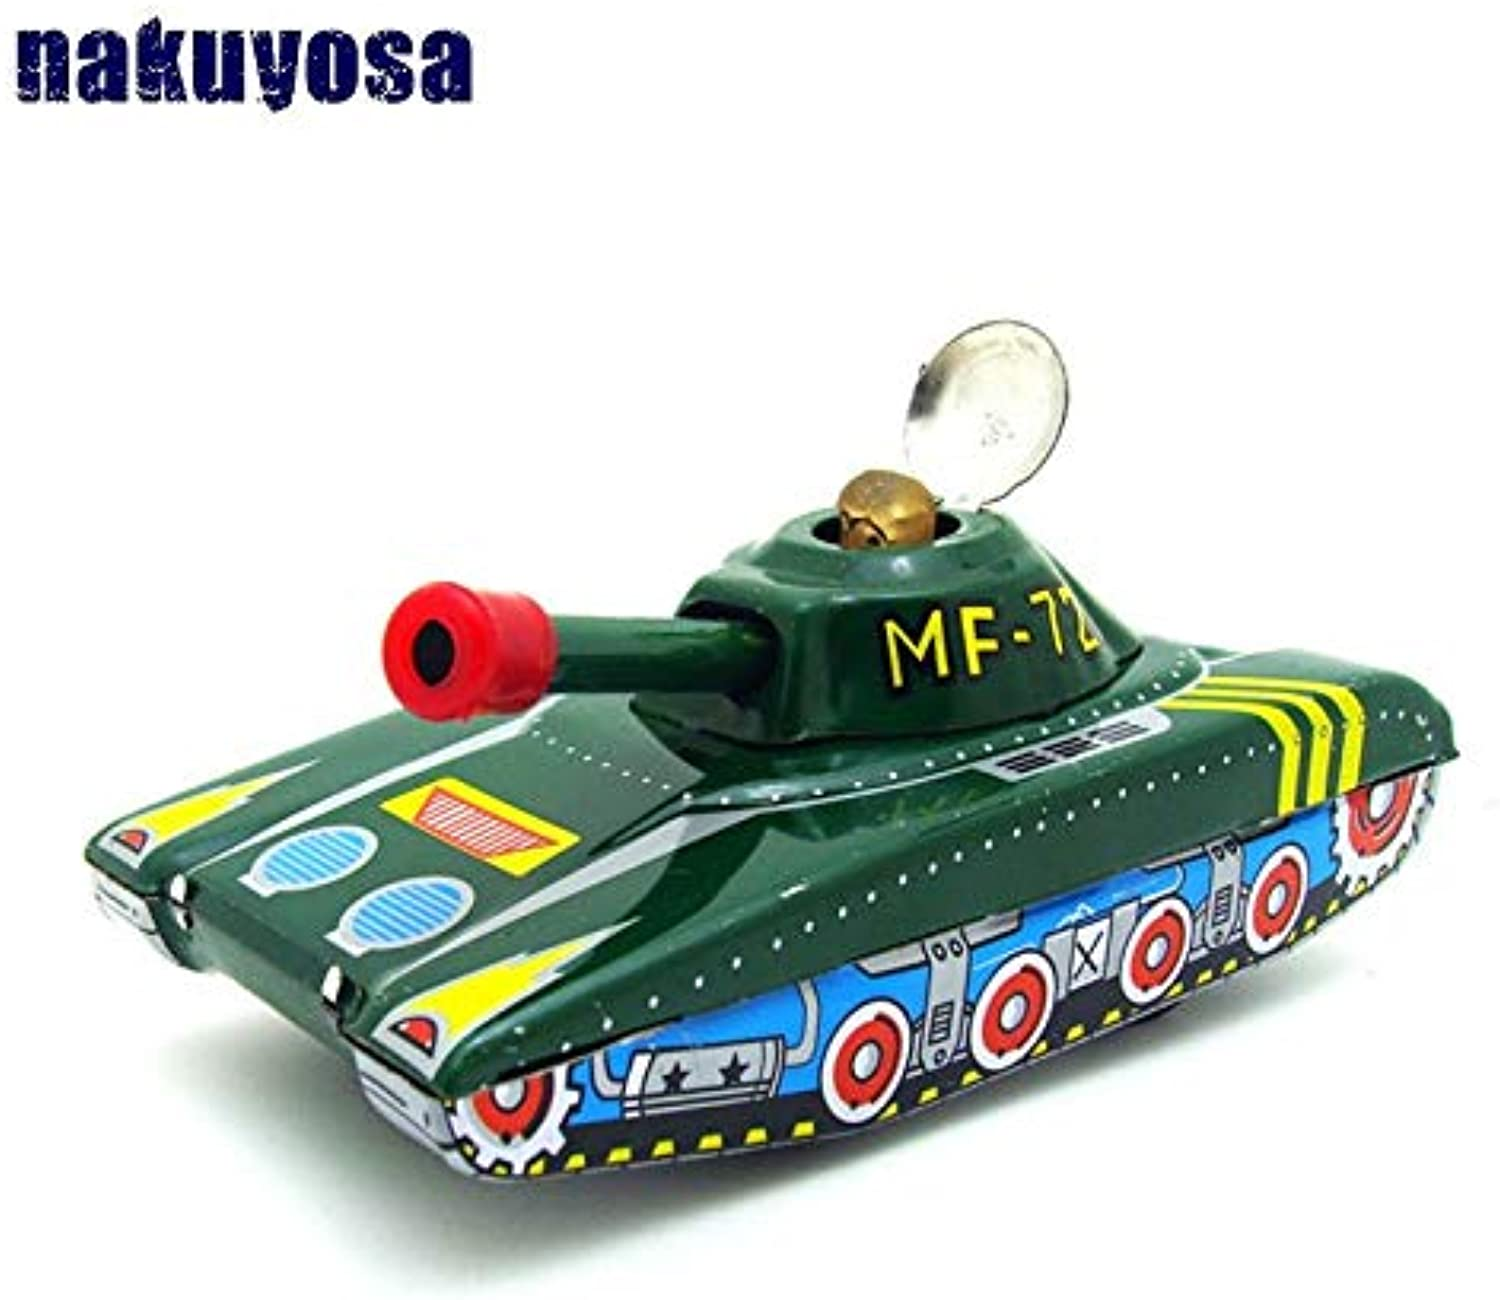 Generic Inertia Tank Model MF721 Classic Tin Toy Clockwork Toys Collection Nostalgic Toys Cars Kids Toys Gifts